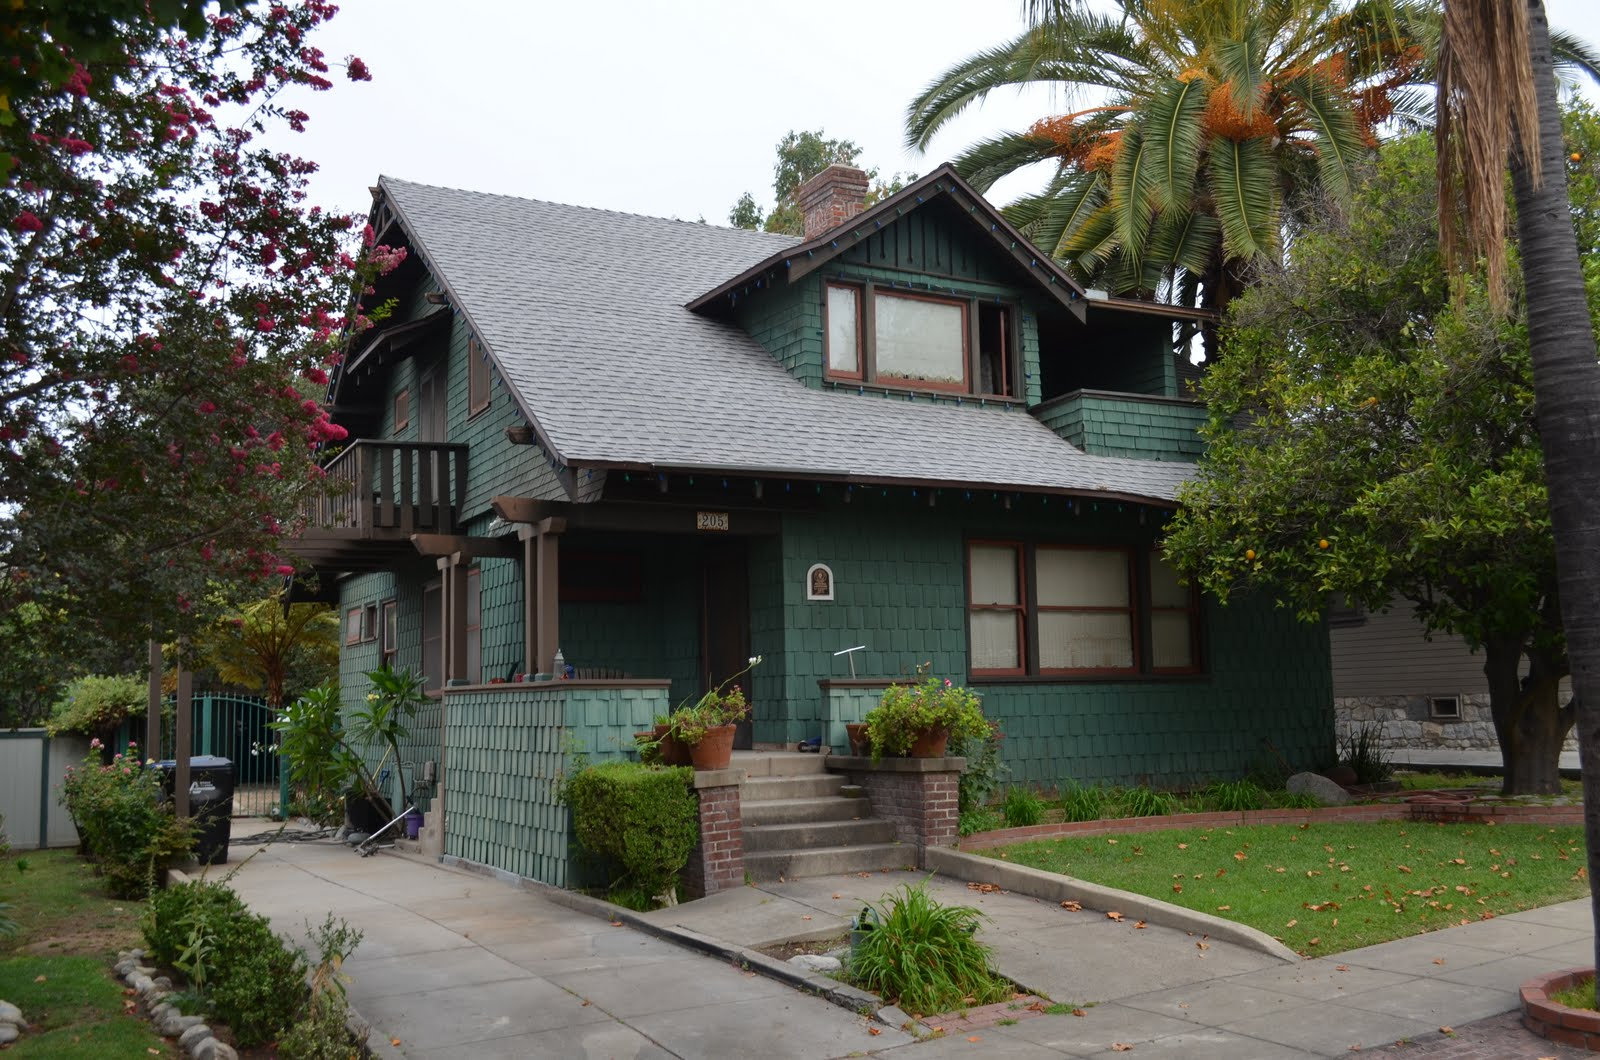 Photo: Historic Landmark #39 - 205 N. Encinitas